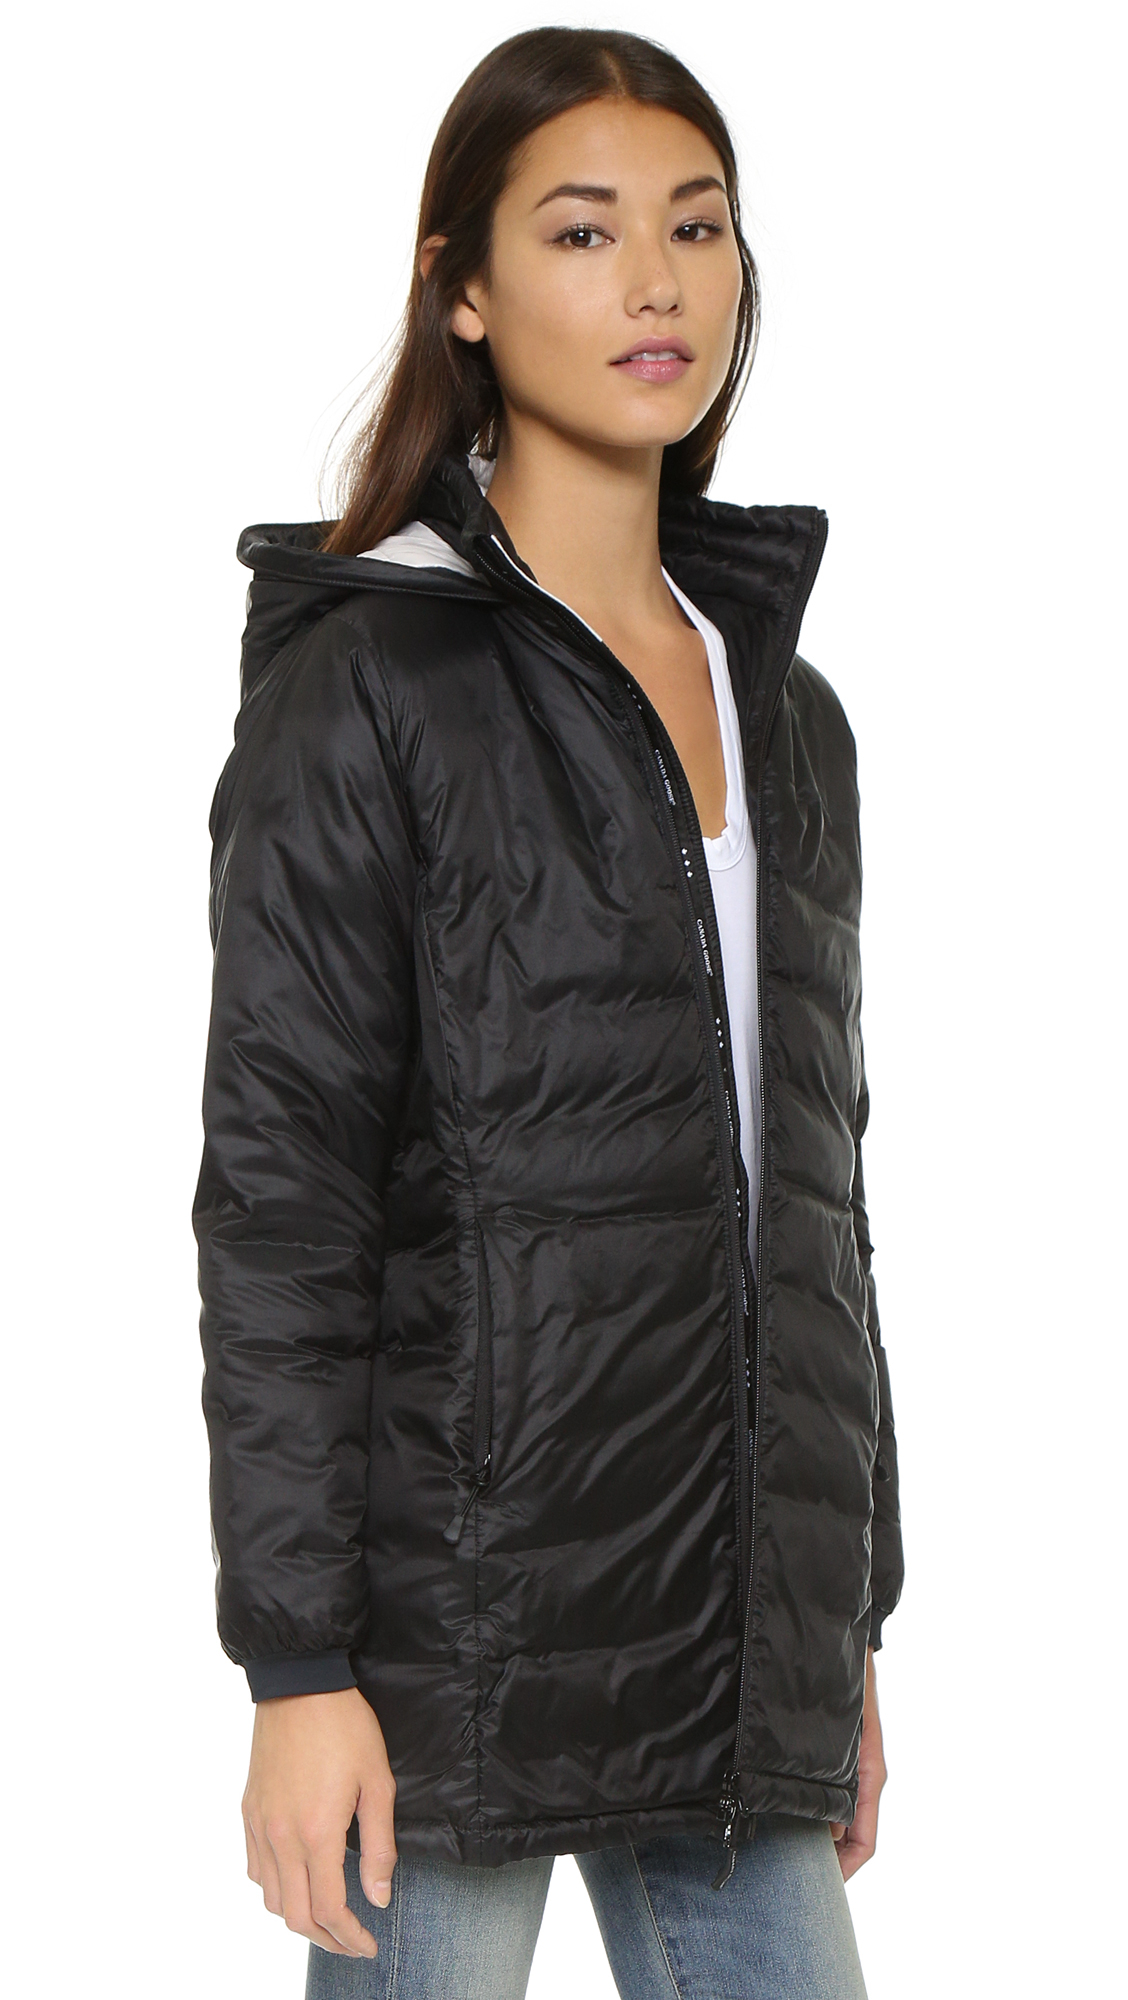 Shop womens jackets & coats cheap sale online, you can buy winter black leather jackets, denim jackets, bomber jackets and trench coats for women at wholesale prices on rusticzcountrysstylexhomedecor.tk FREE Shipping available worldwide.